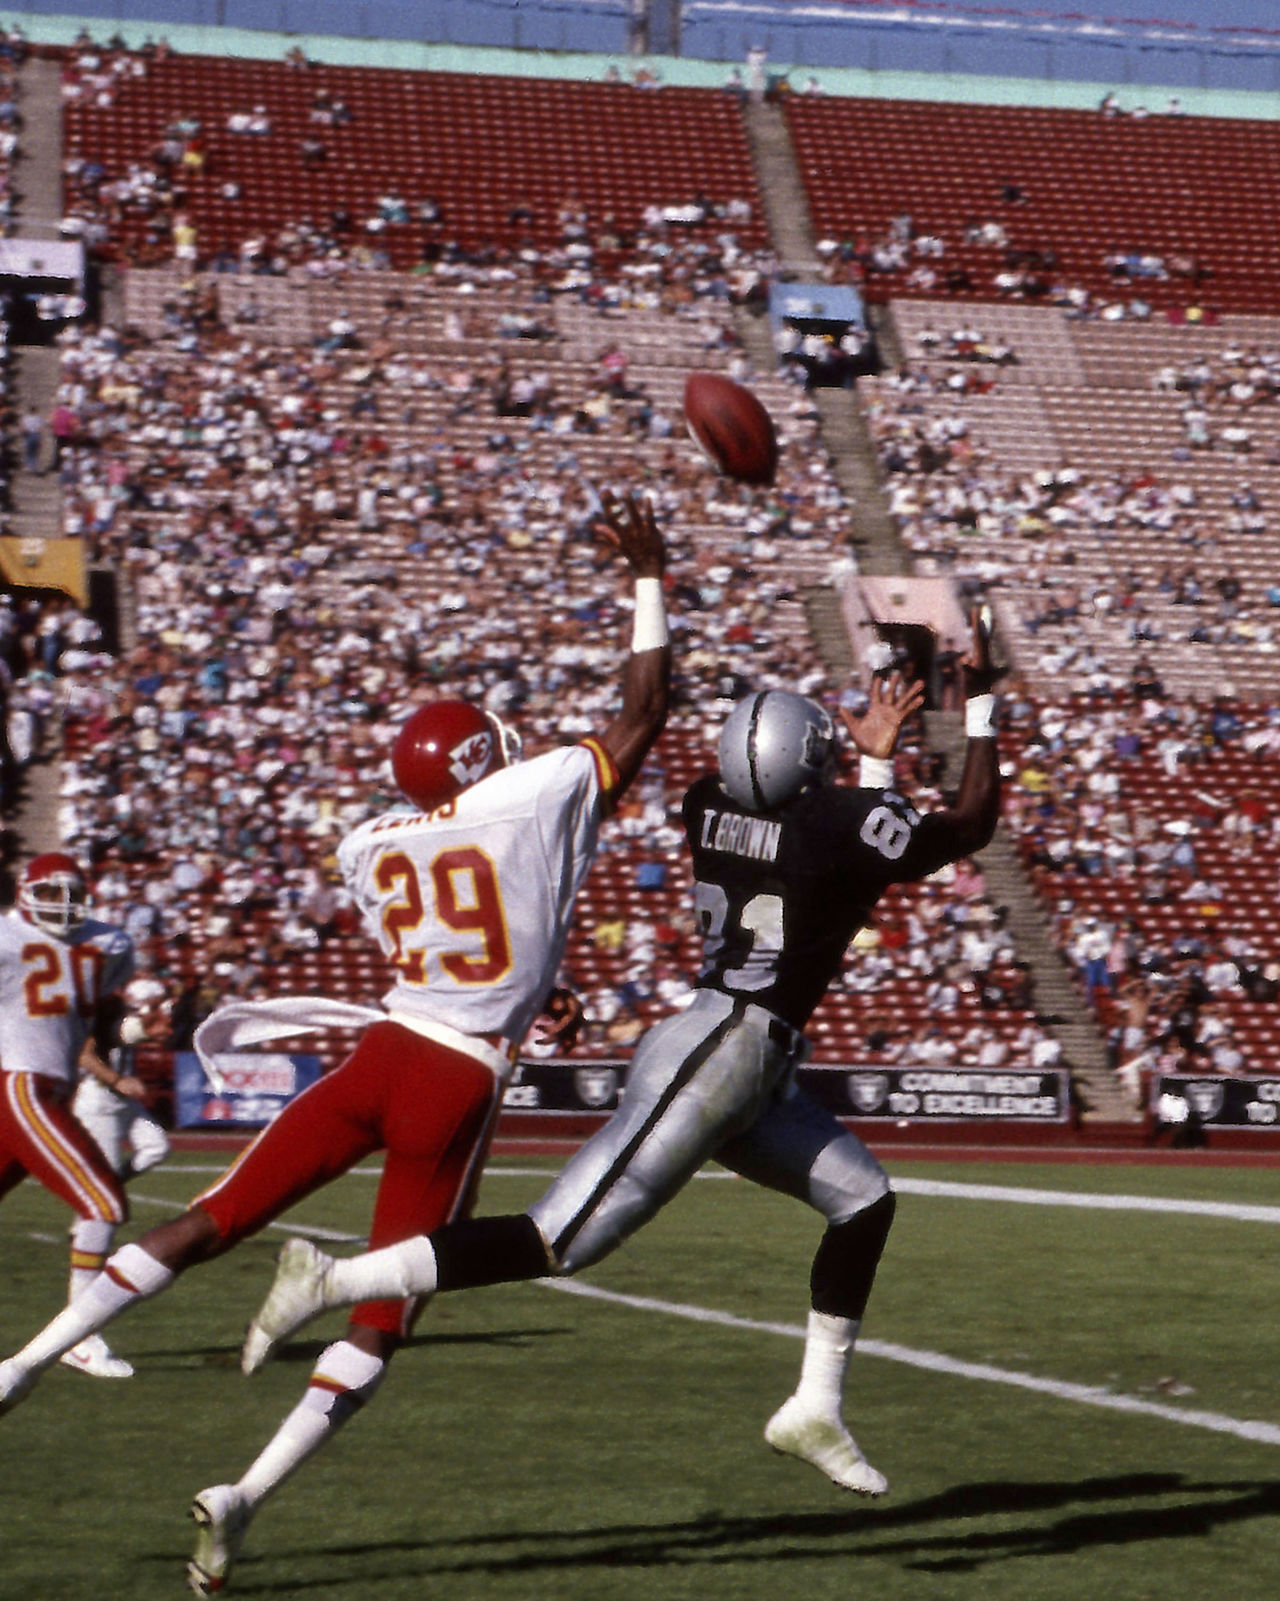 Los Angeles Raiders wide receiver Tim Brown (81)  beats Kansas City Chiefs cornerback Albert Lewis (29) for a pass during an NFL game in Los Angeles, Oct. 30, 1988.  The Raiders defeated the Chiefs 17-10.